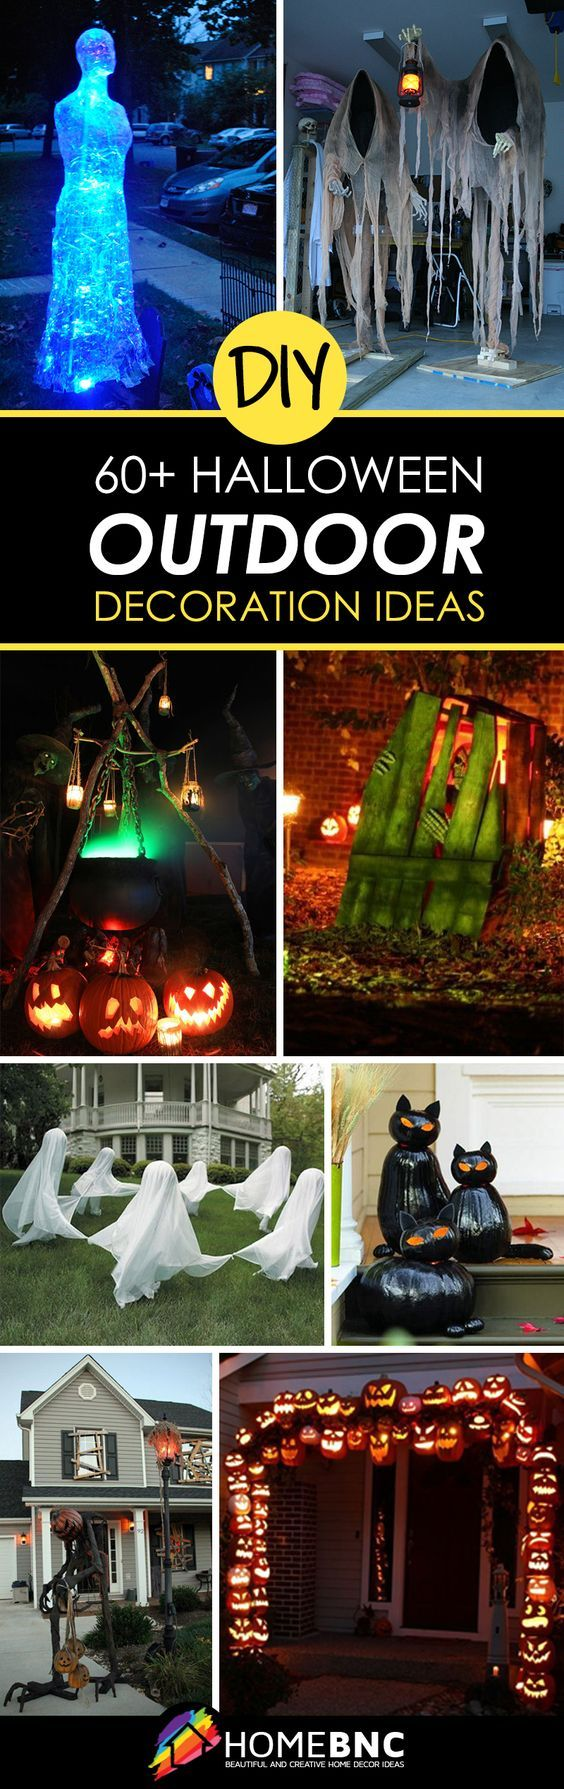 229 best images about Halloween on Pinterest | Halloween ...